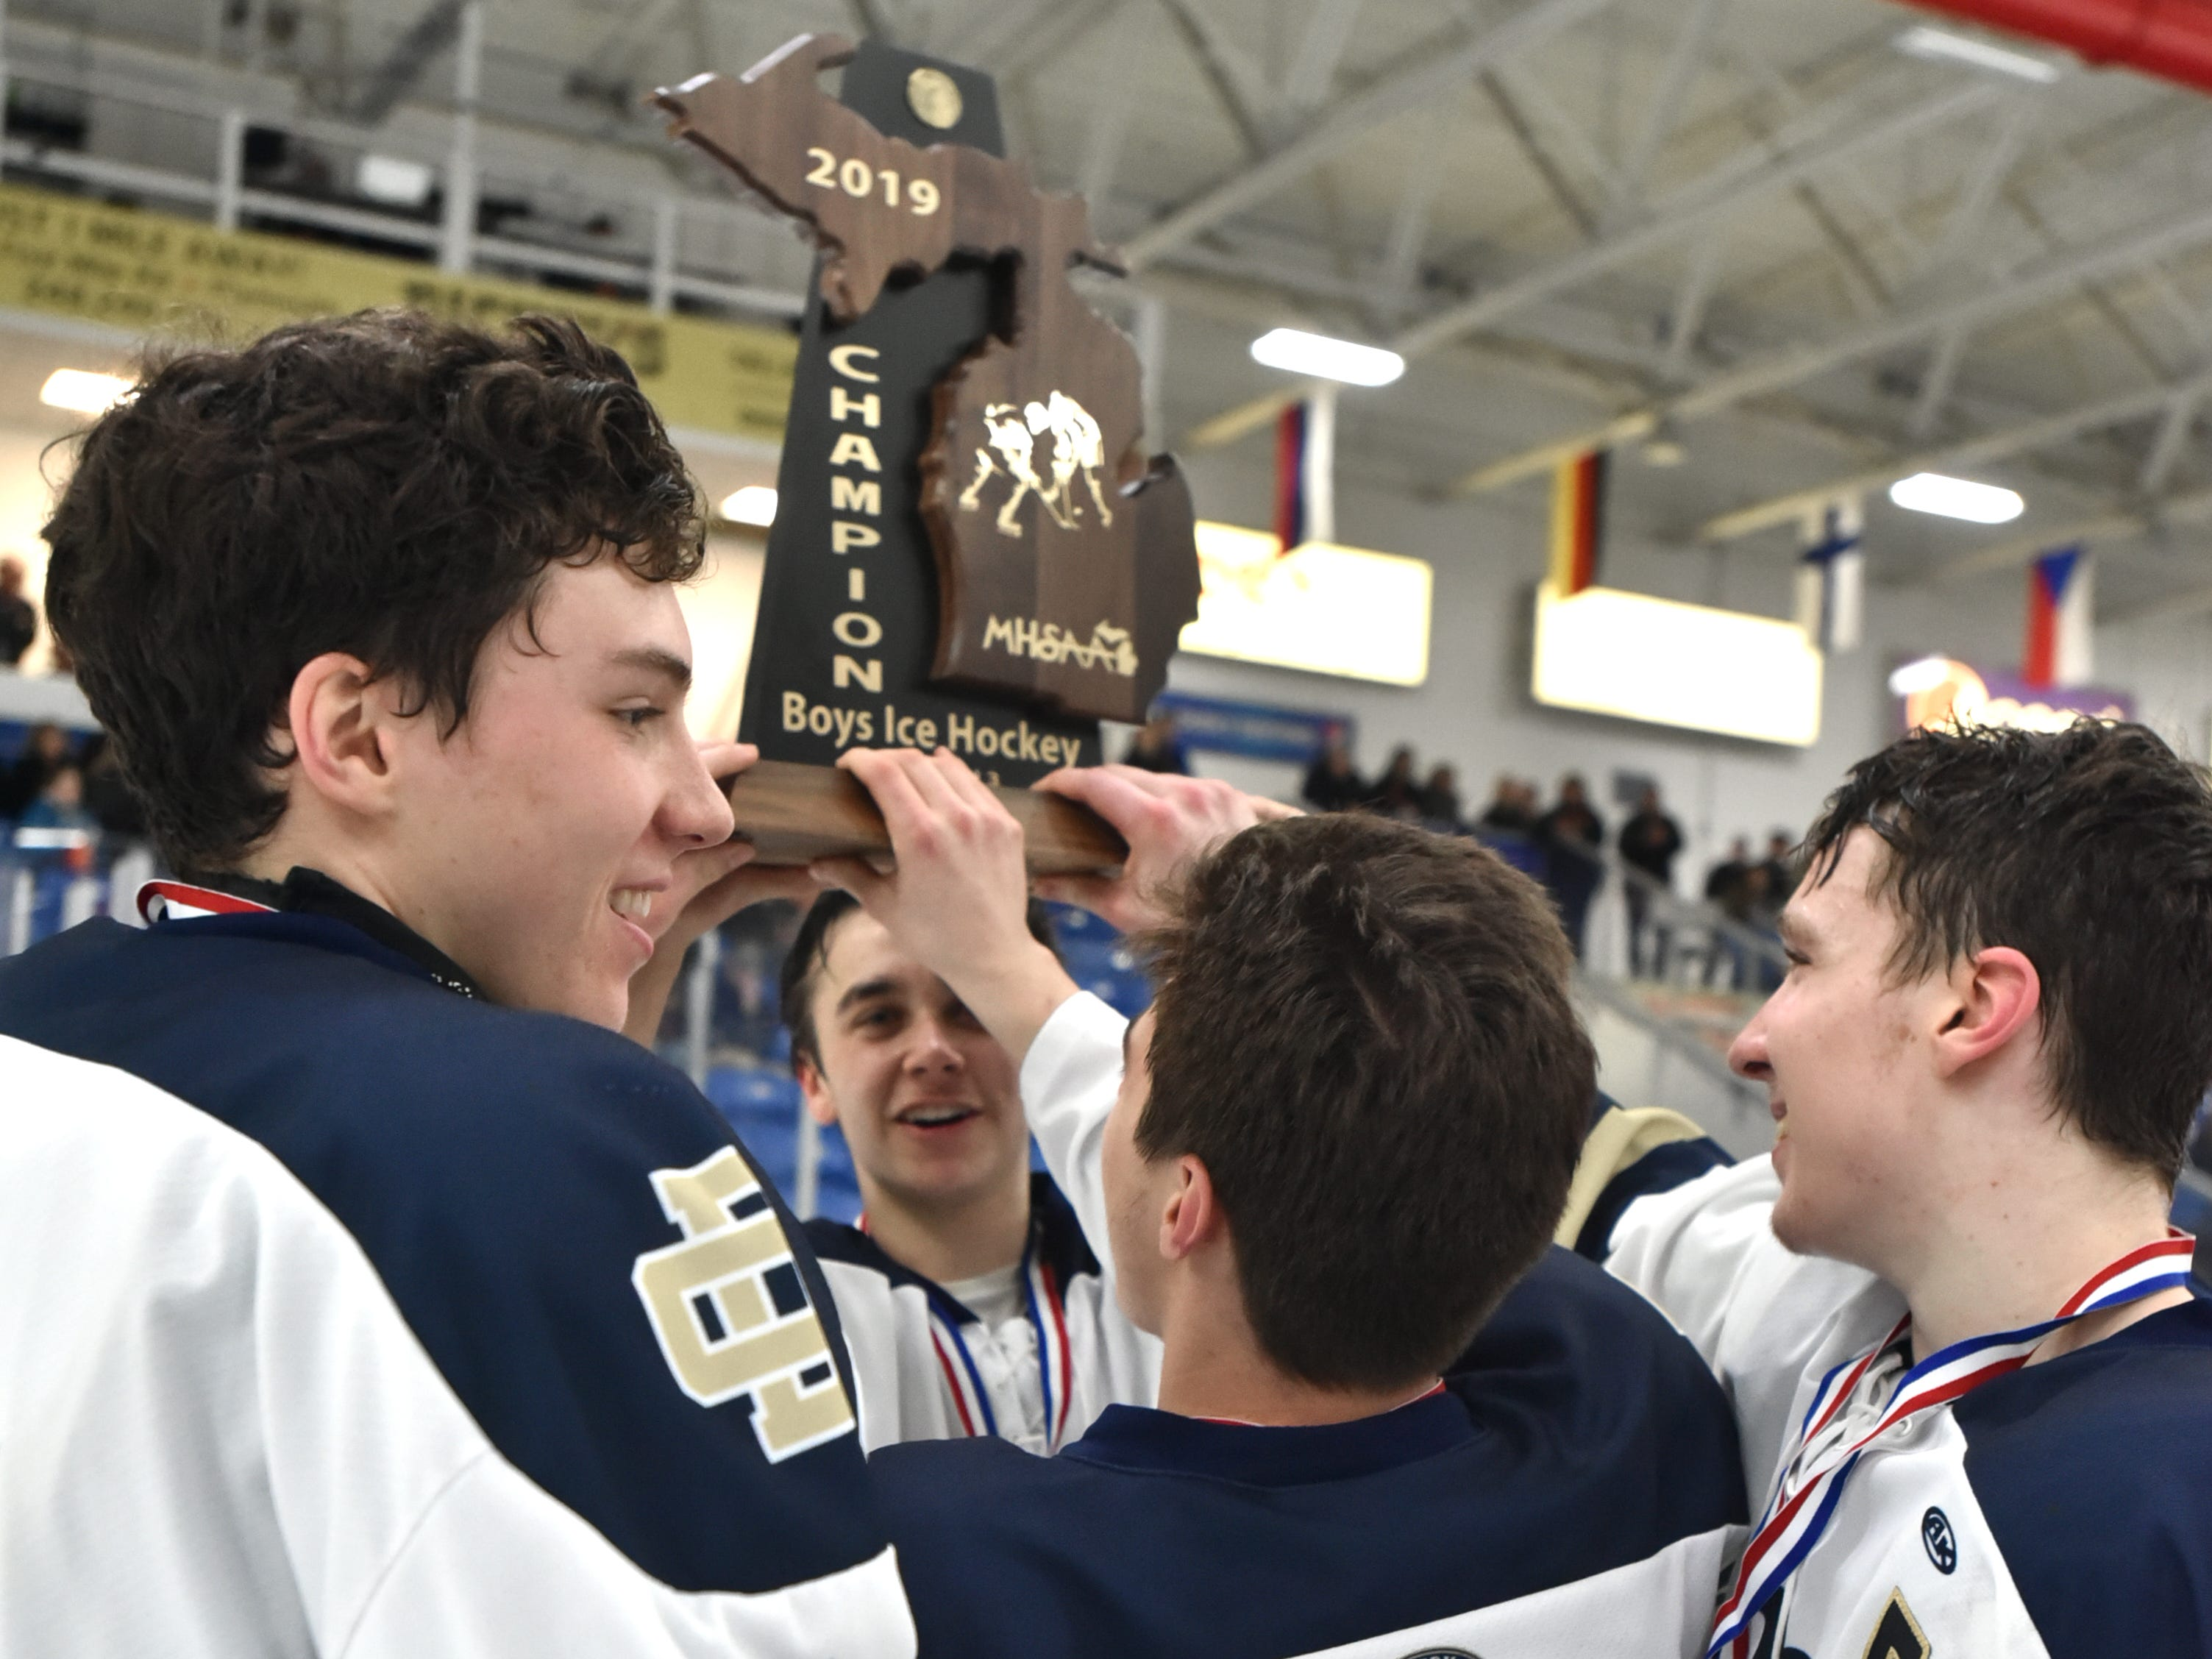 Country Day captains raise their Division 3 MHSAA state championship trophy on March 9 at USA Hockey Arena in Plymouth, MI.